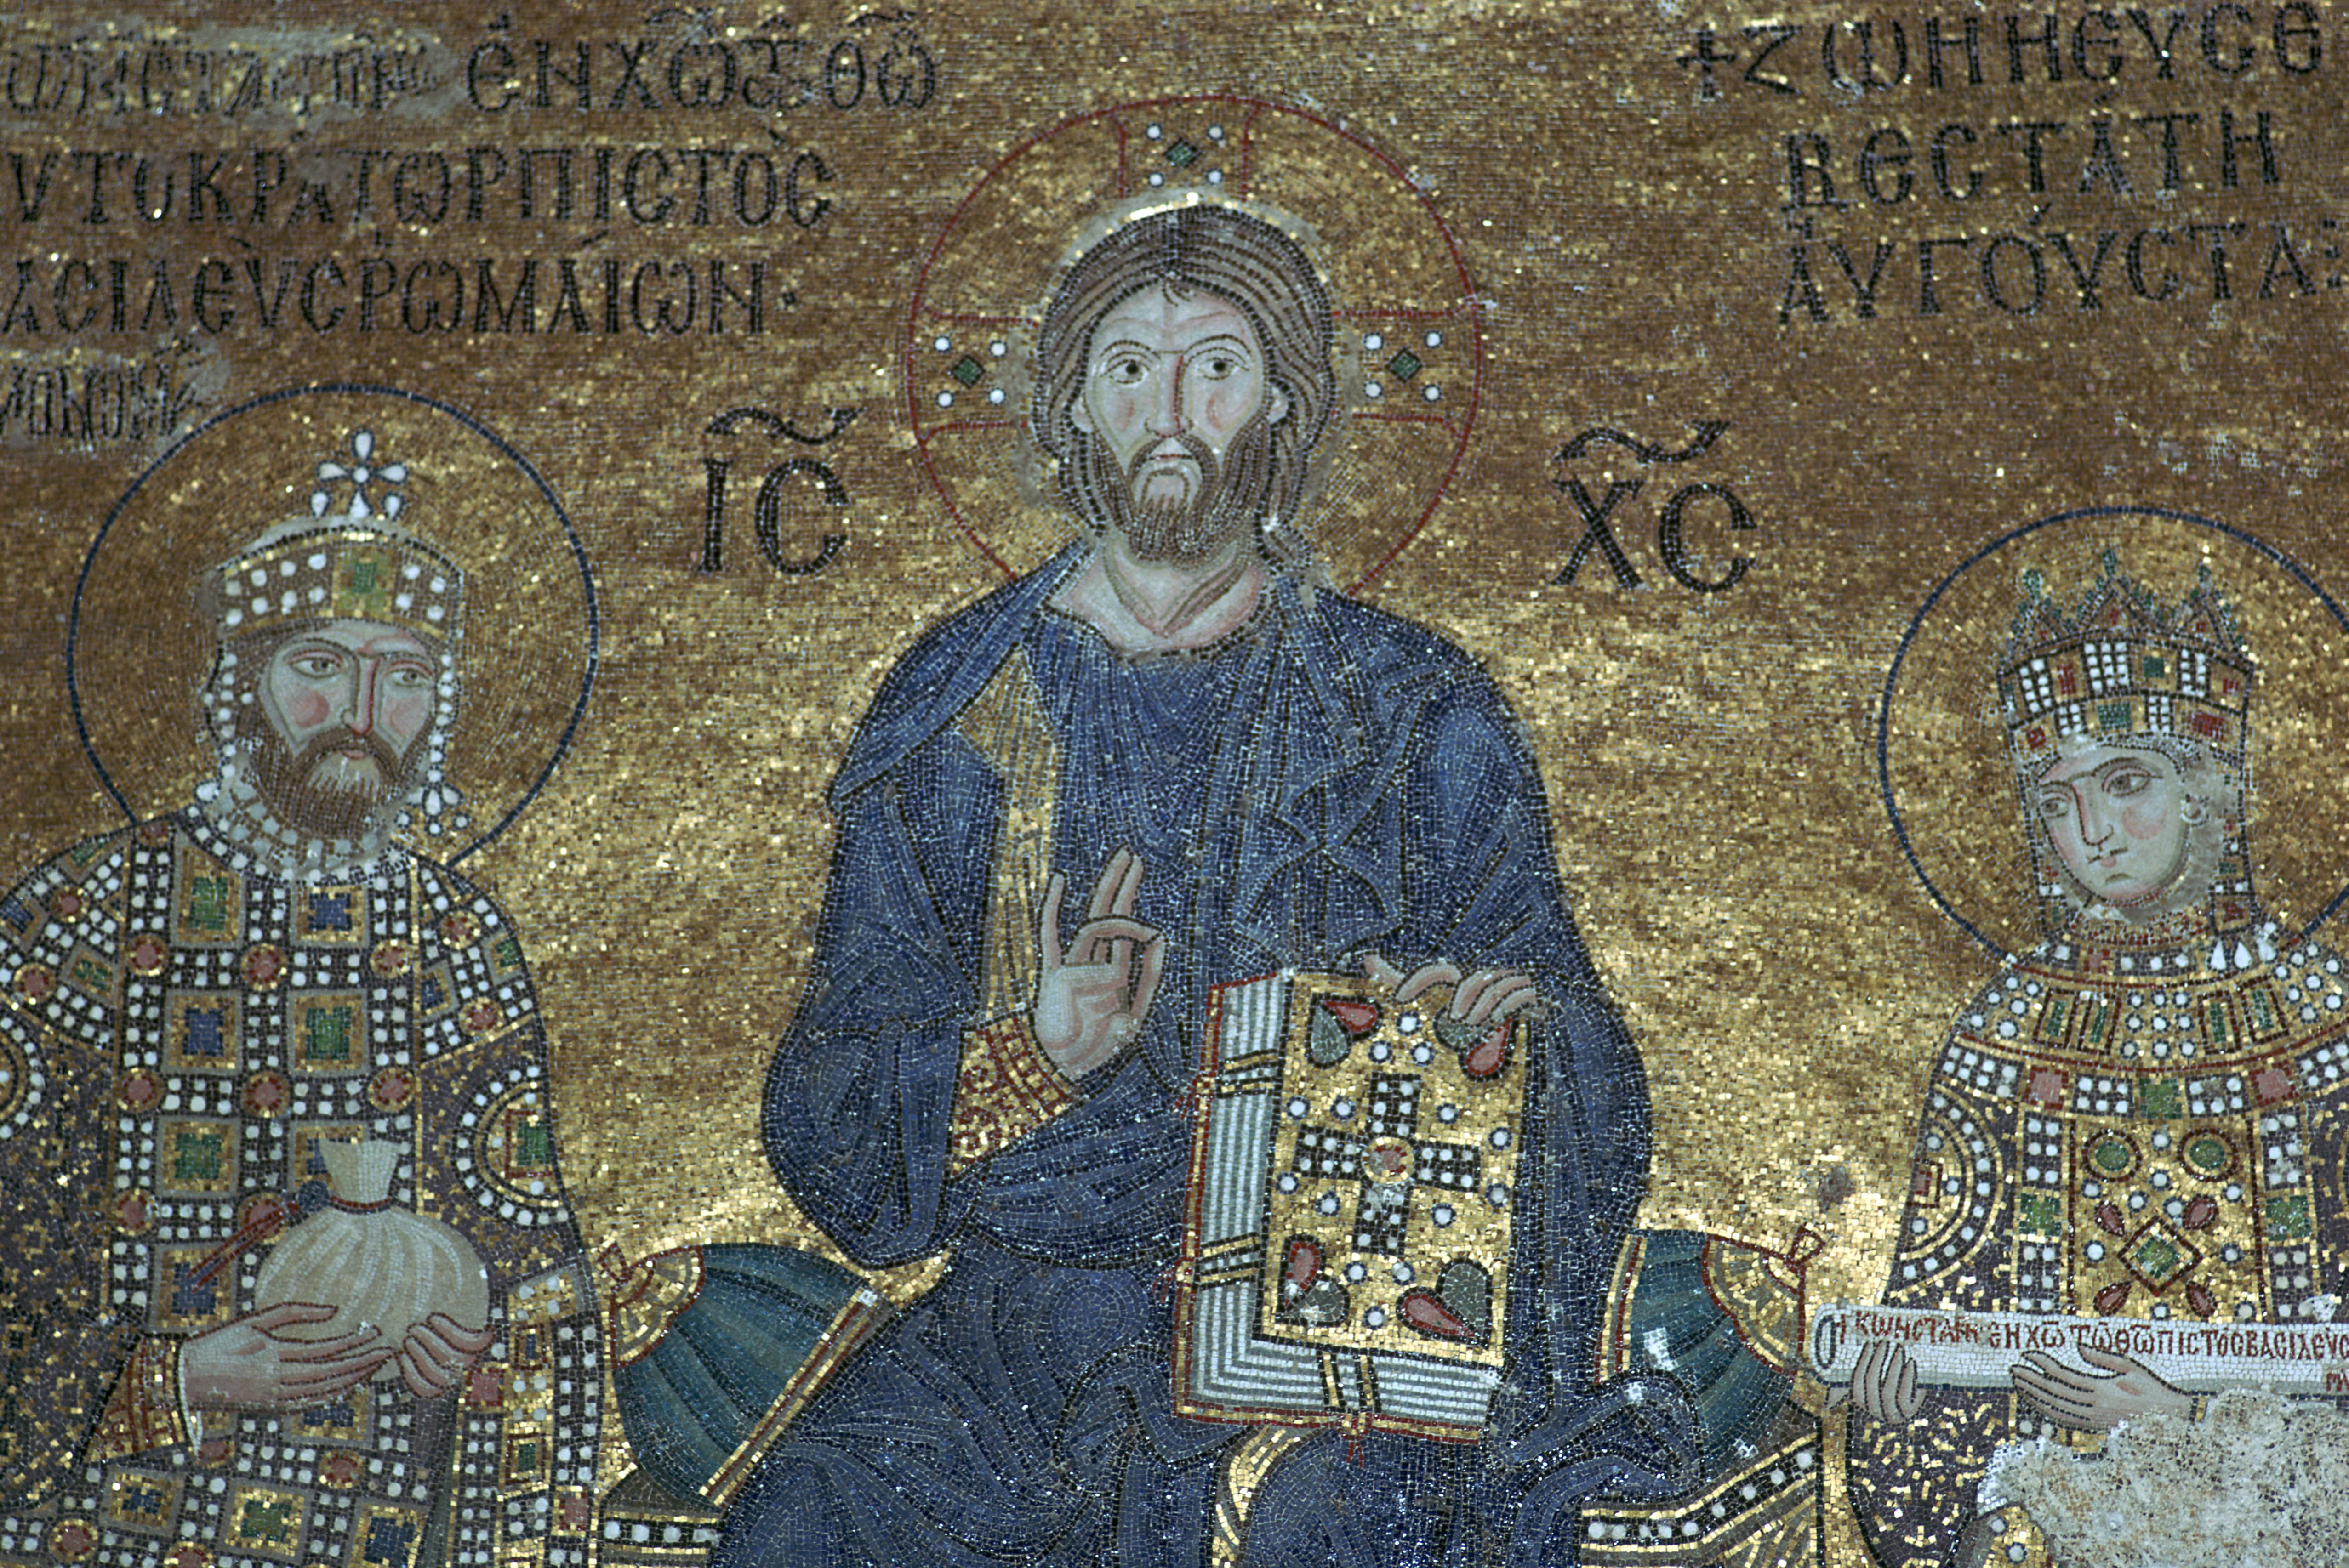 The Byzantines sure loved their mosaics.